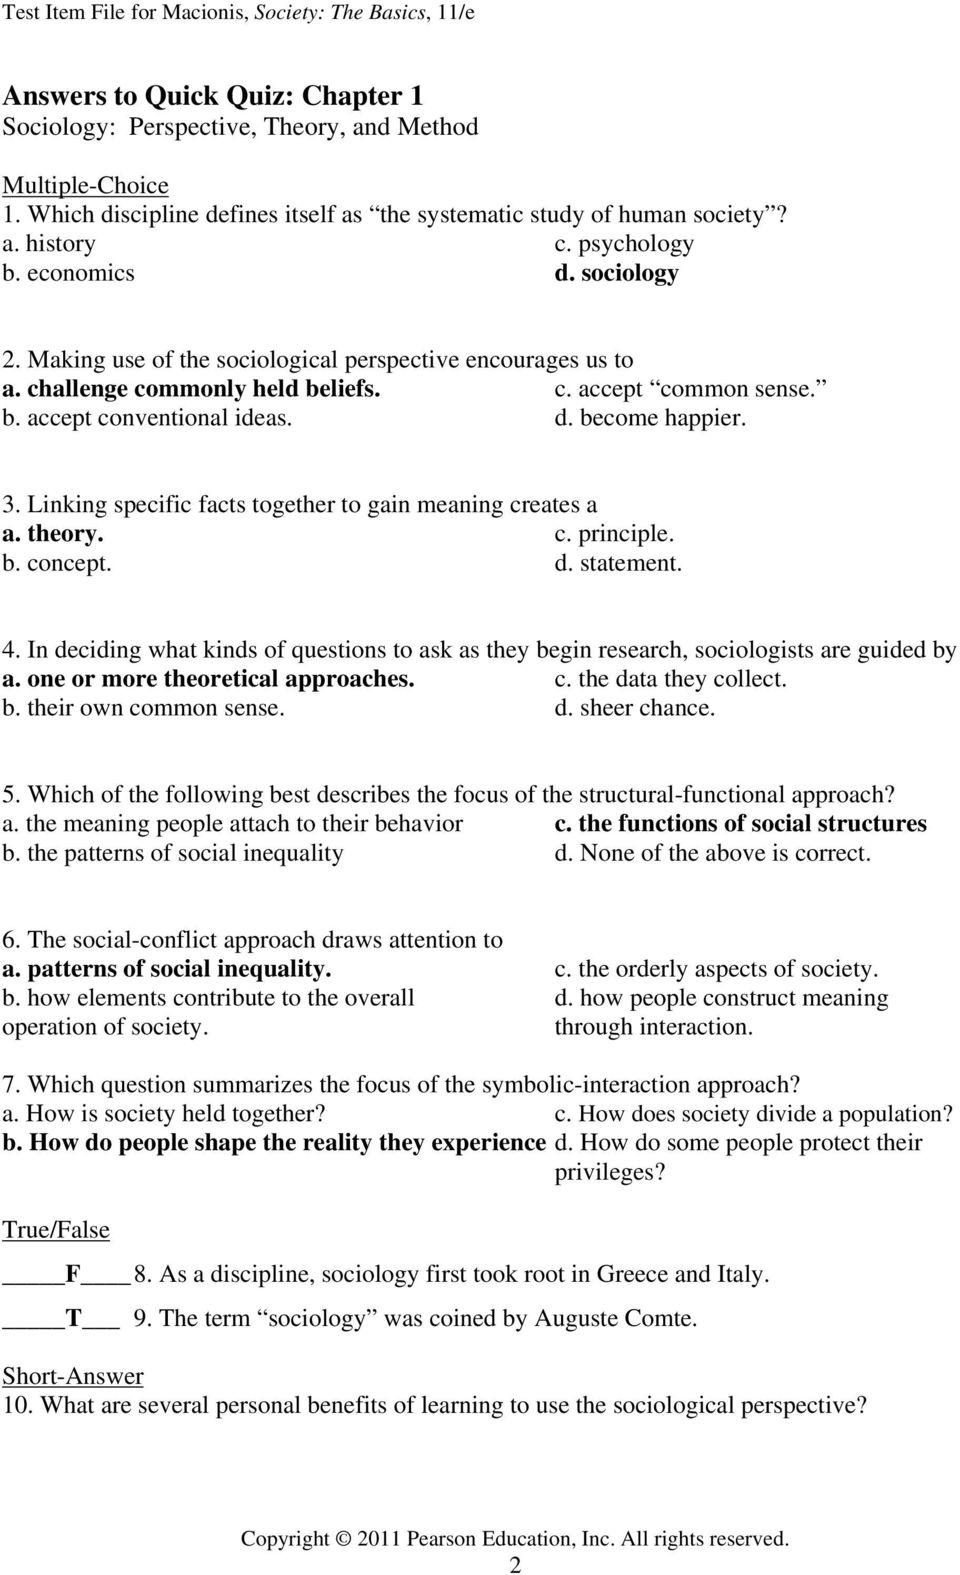 sociological essay topics sociology essay